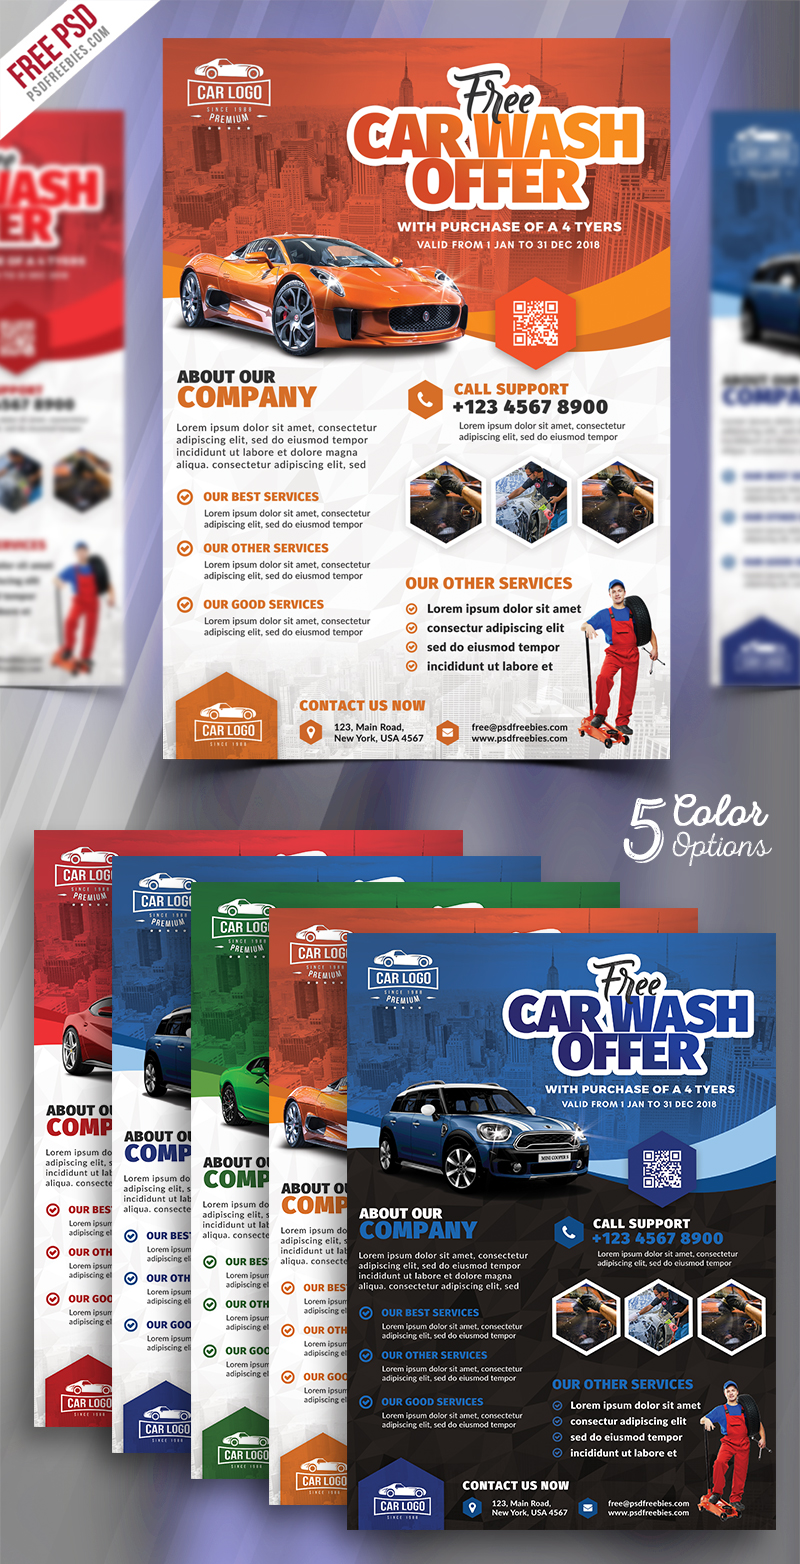 Car Wash Services Promotional Flyer Psd Bundle Psdfreebies Com